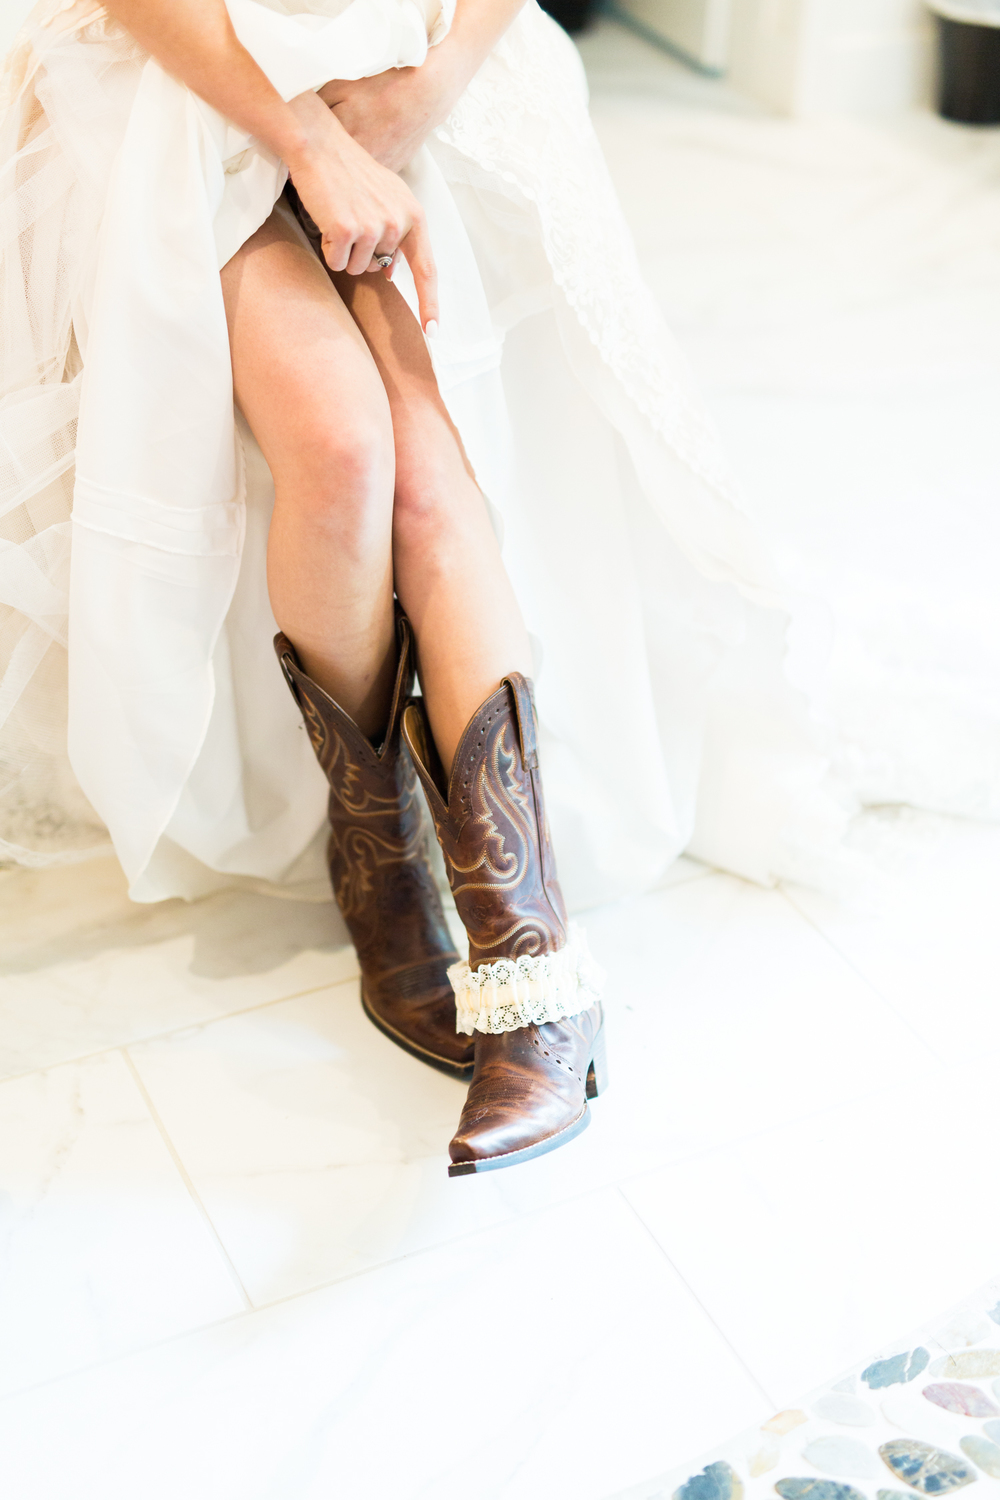 oklahoma wedding photographer pasture at willows ranch getting ready gown broken bow wedding photographer cowboy boots